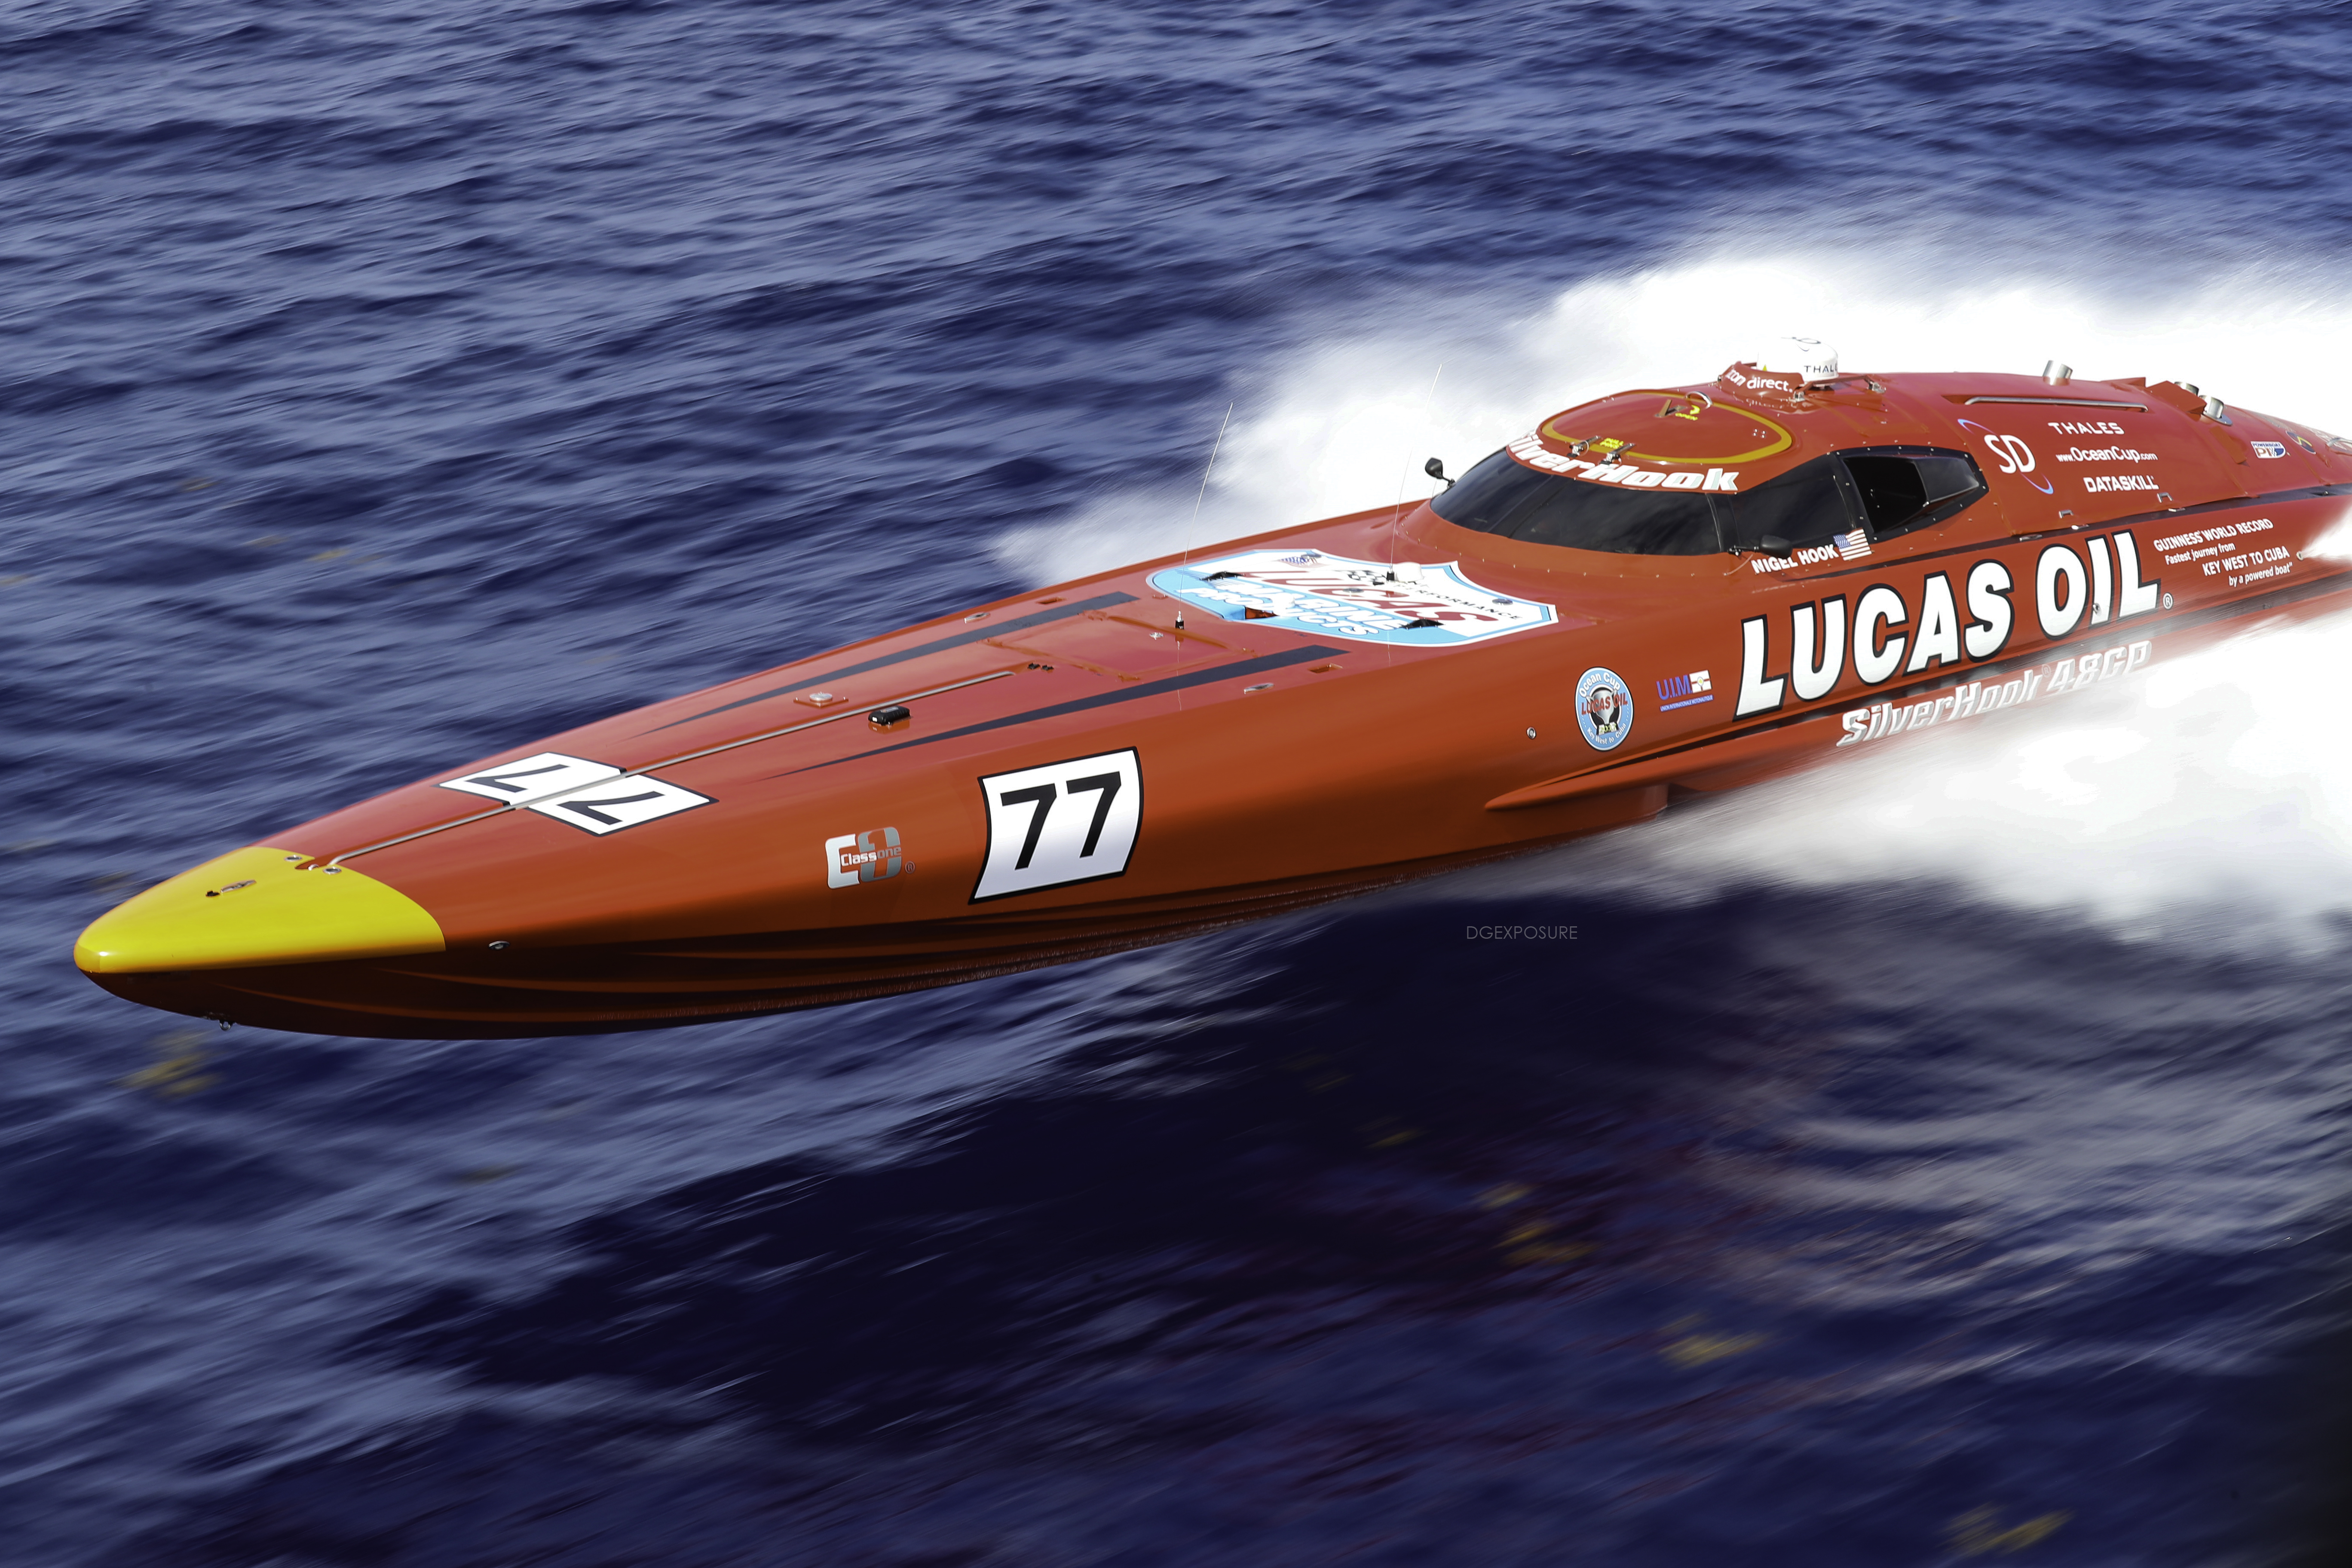 Lucas Oil SilverHook Powerboat